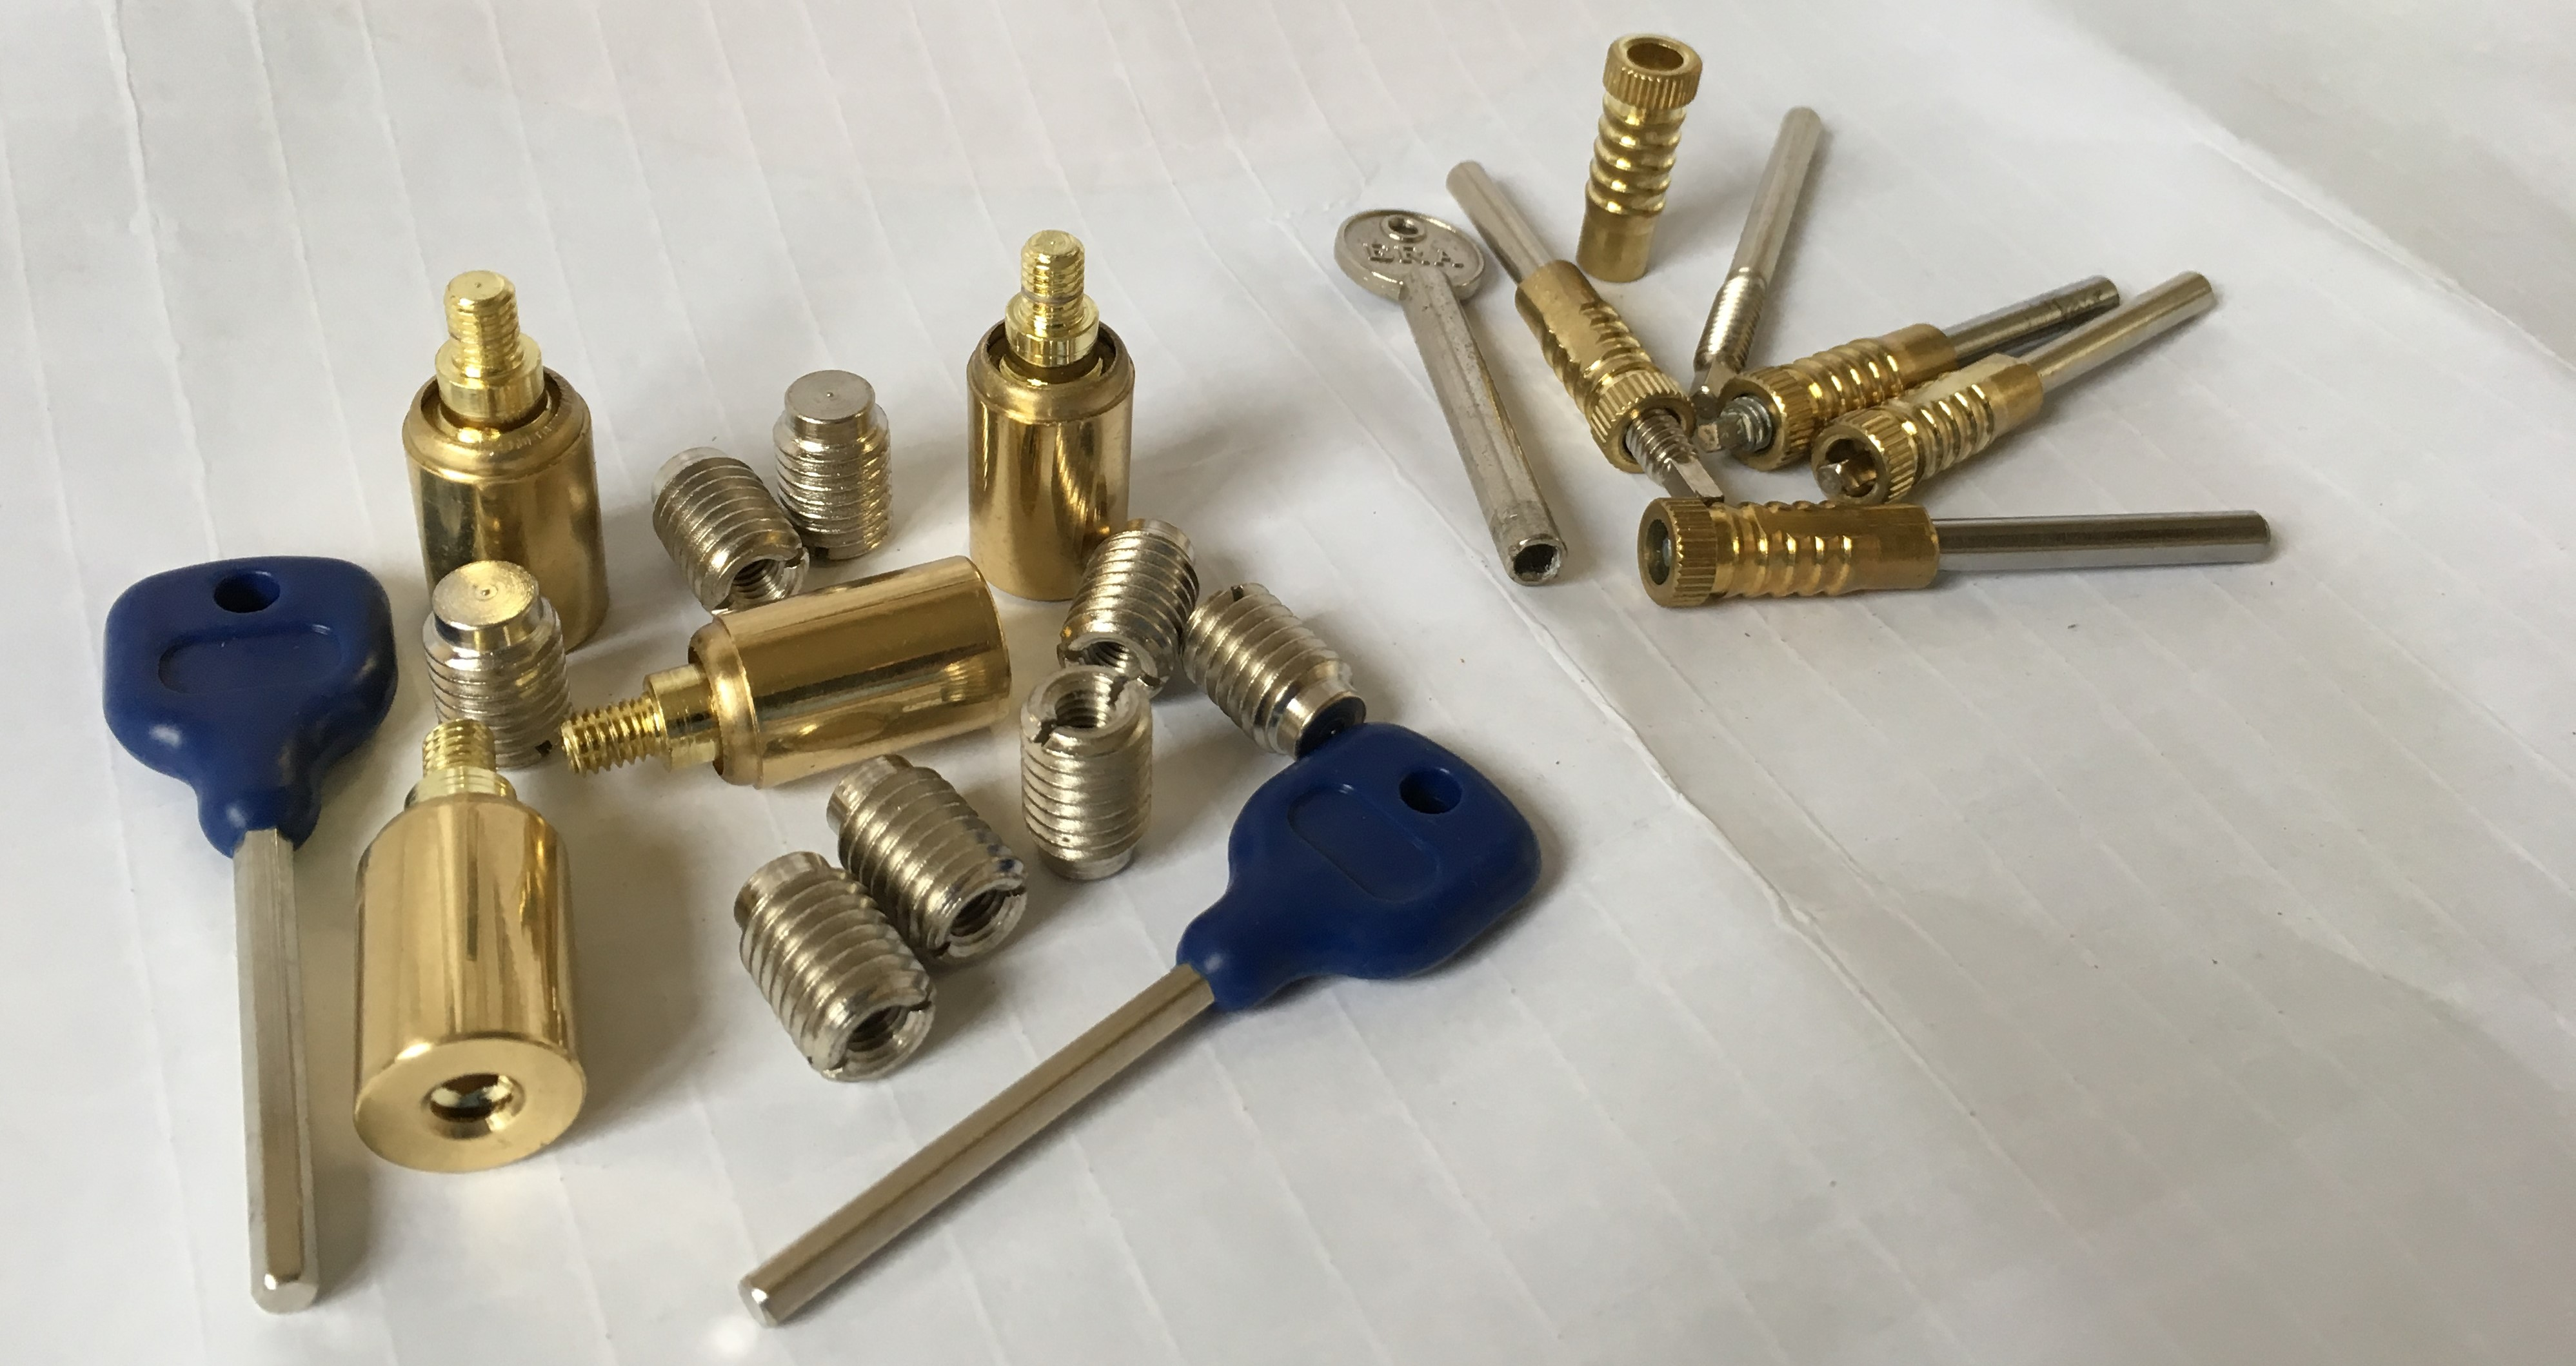 a picures of sash bolts and studs plus keys